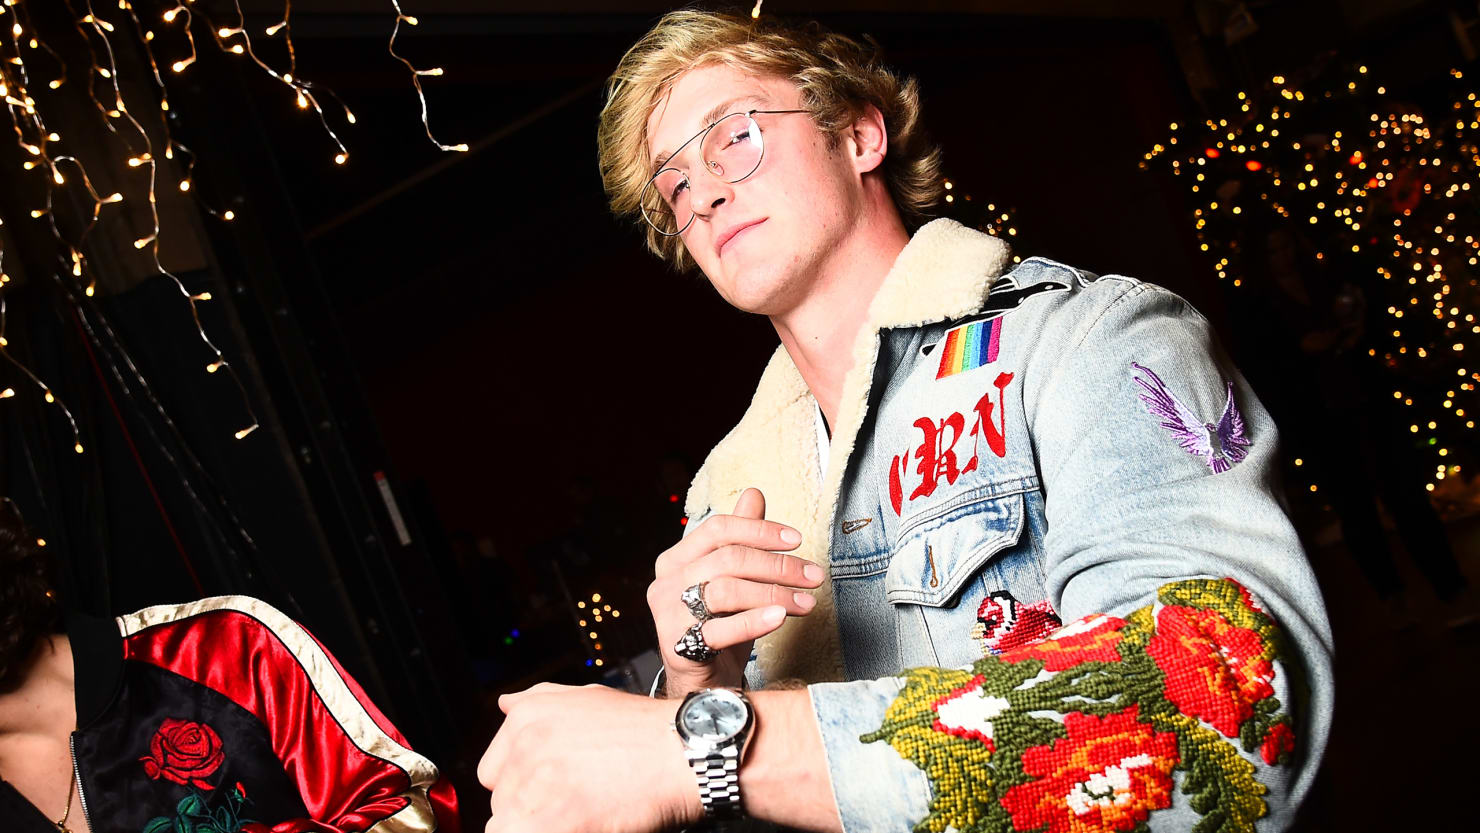 Police Confirm Logan Paul Really Did Citizen's Arrest an Intruder. Here's Who He Collared.